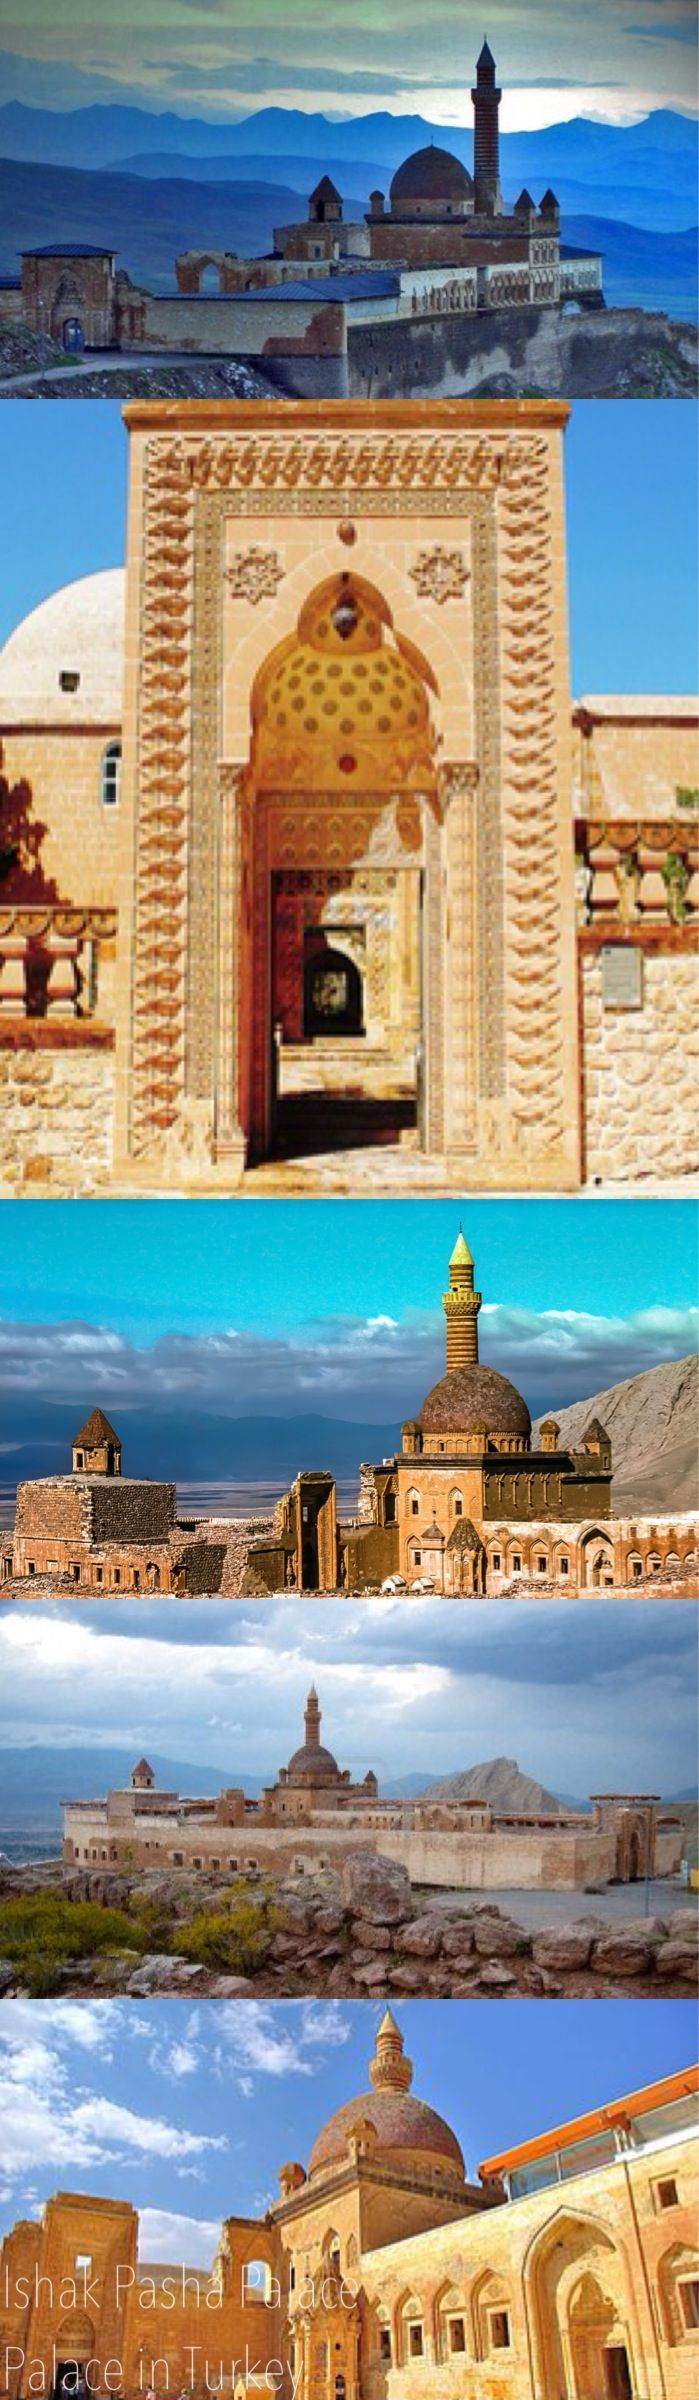 Beautiful Highlights/Views of Ishak Pasha Palace